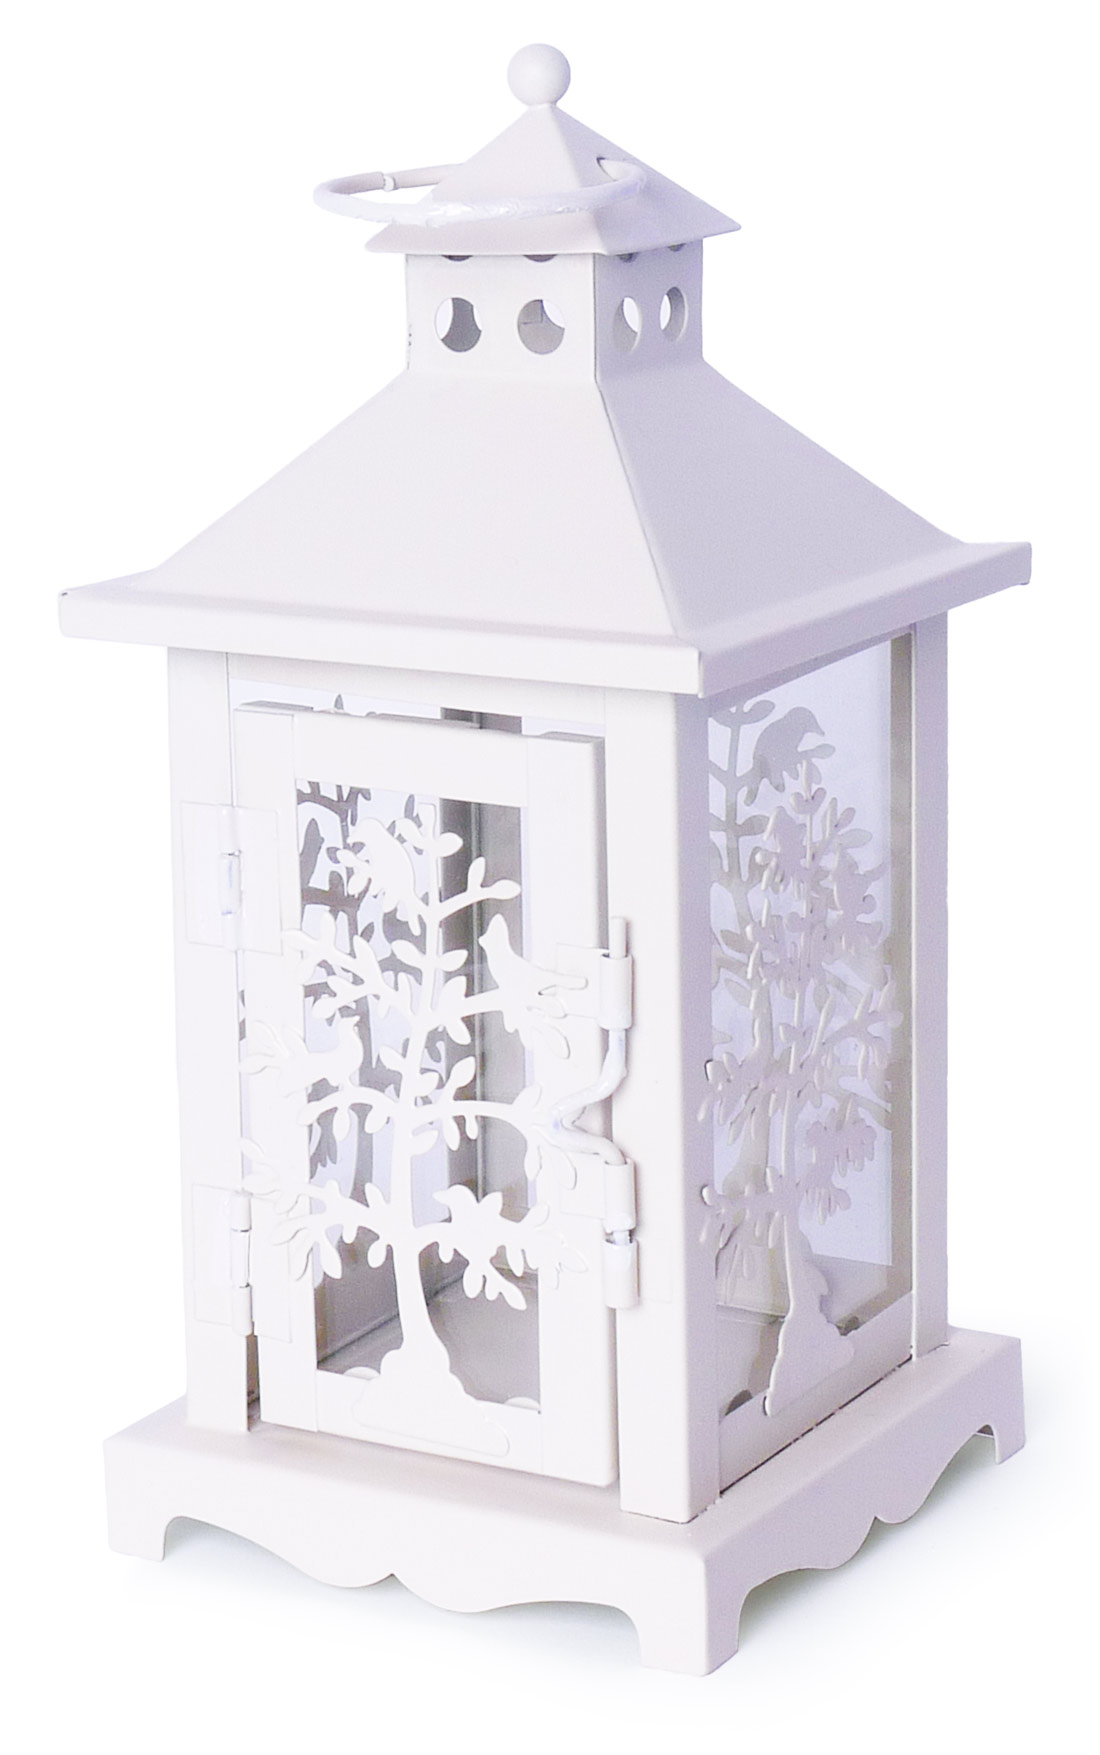 Image of White Candle Lantern 8-Inch, Set of 2